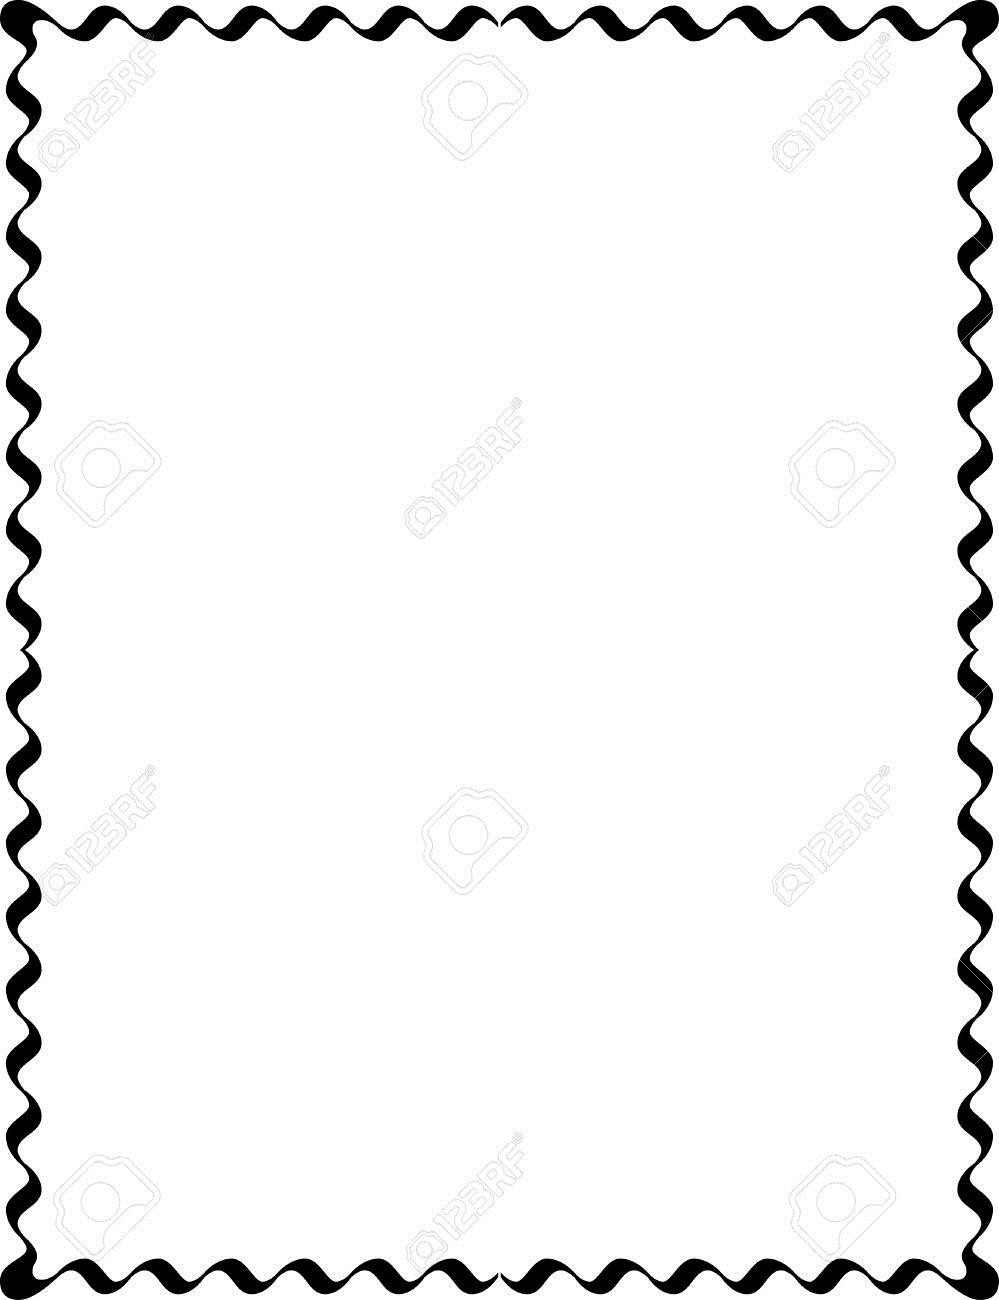 graduation borders free download best graduation borders on